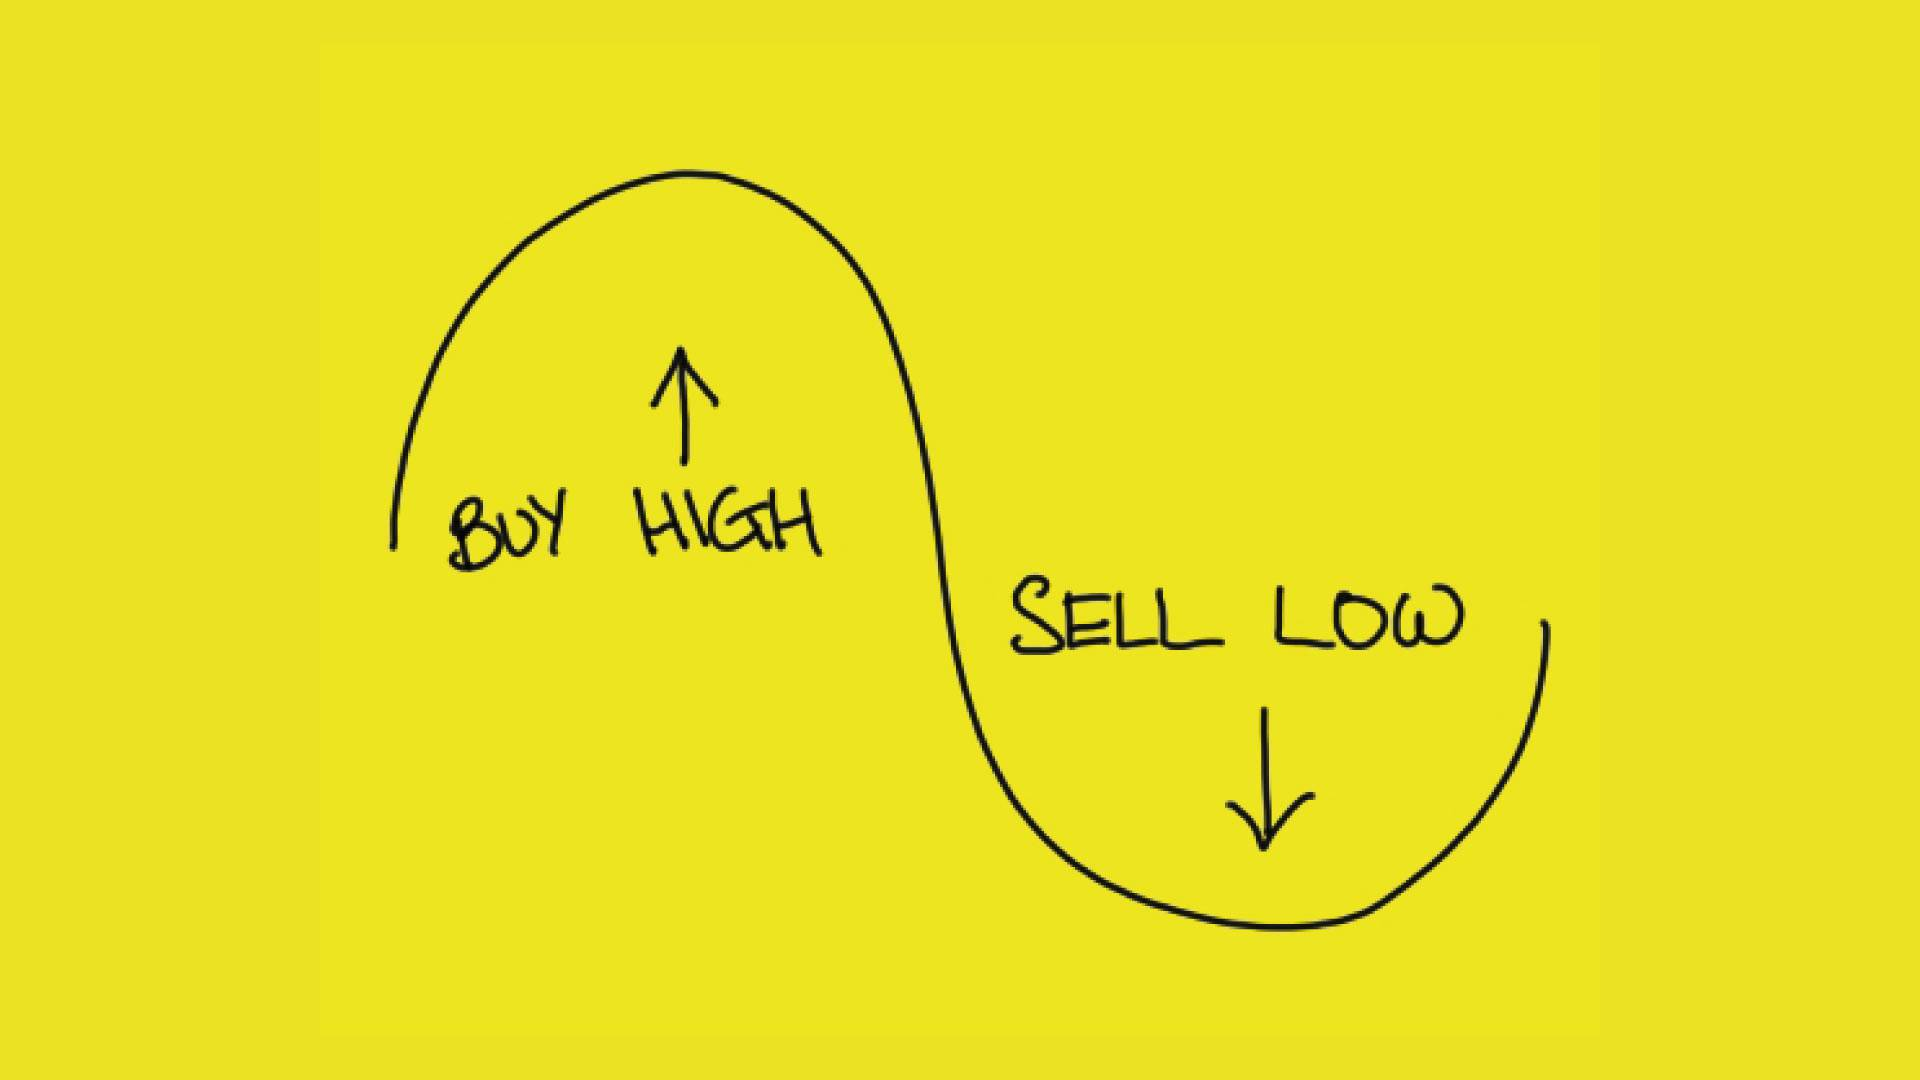 VCs are failing to 'Buy Low, Sell High'